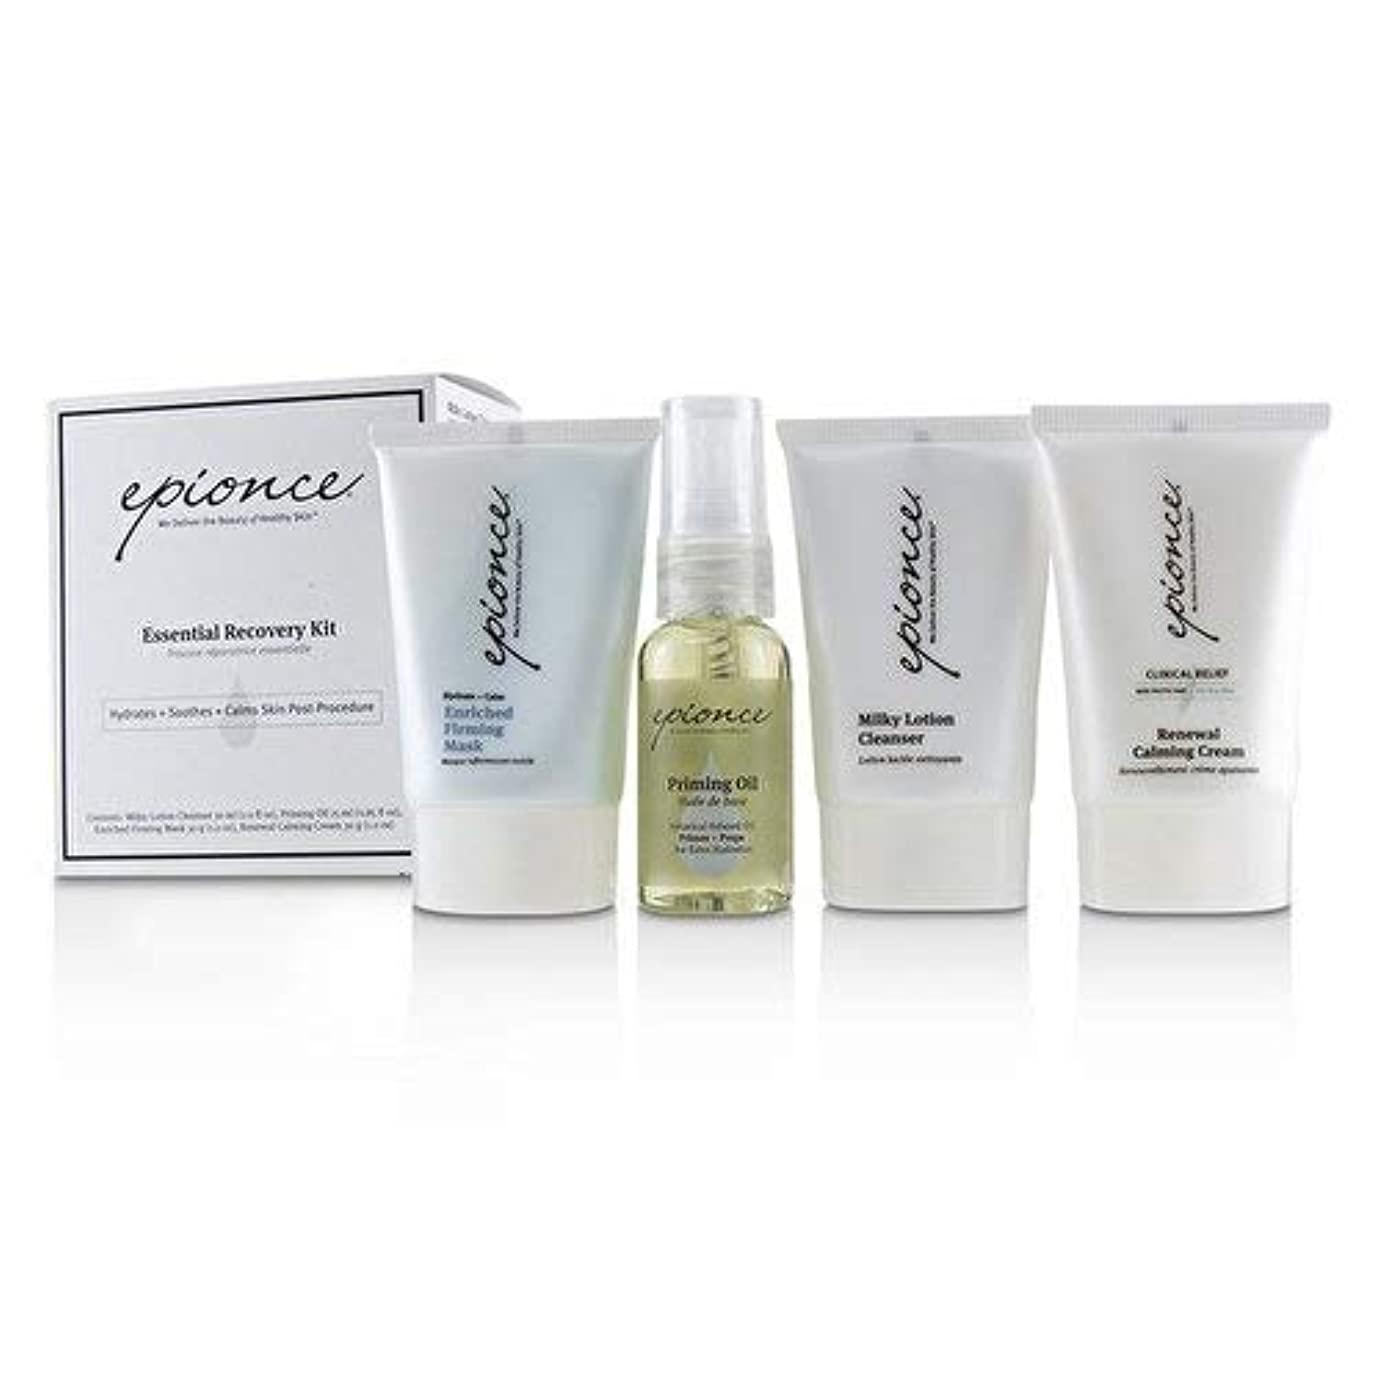 グラフィック縁石賛辞Epionce Essential Recovery Kit: Milky Lotion Cleanser 30ml+ Priming Oil 25ml+ Enriched Firming Mask 30g+ Renewal...